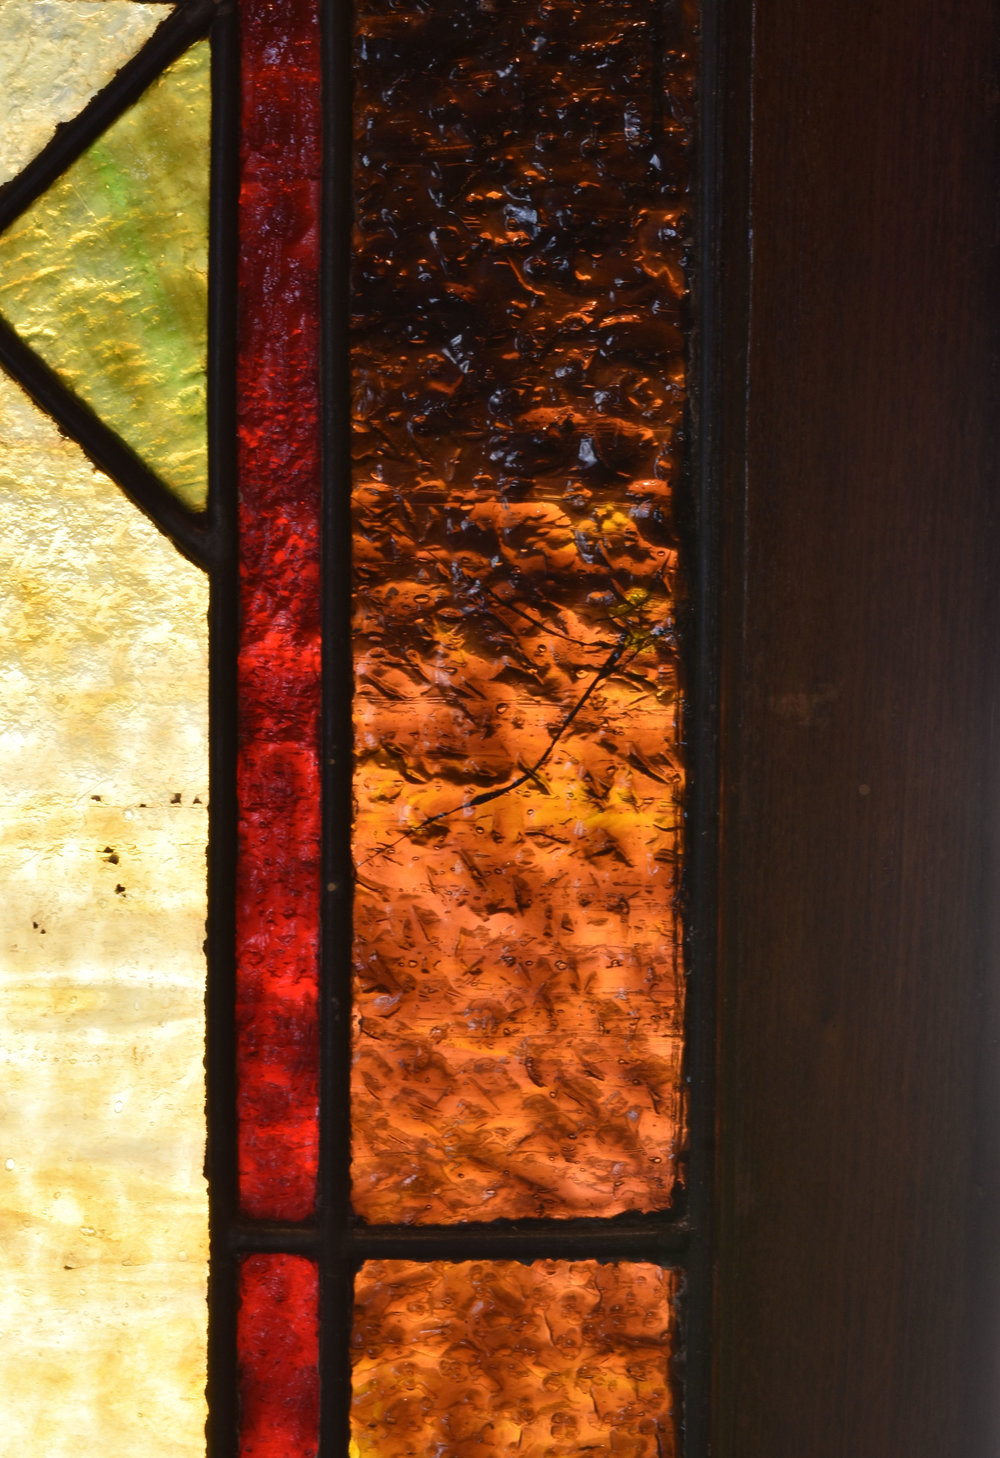 48032 32 by 62 stained glass torches crack.jpg